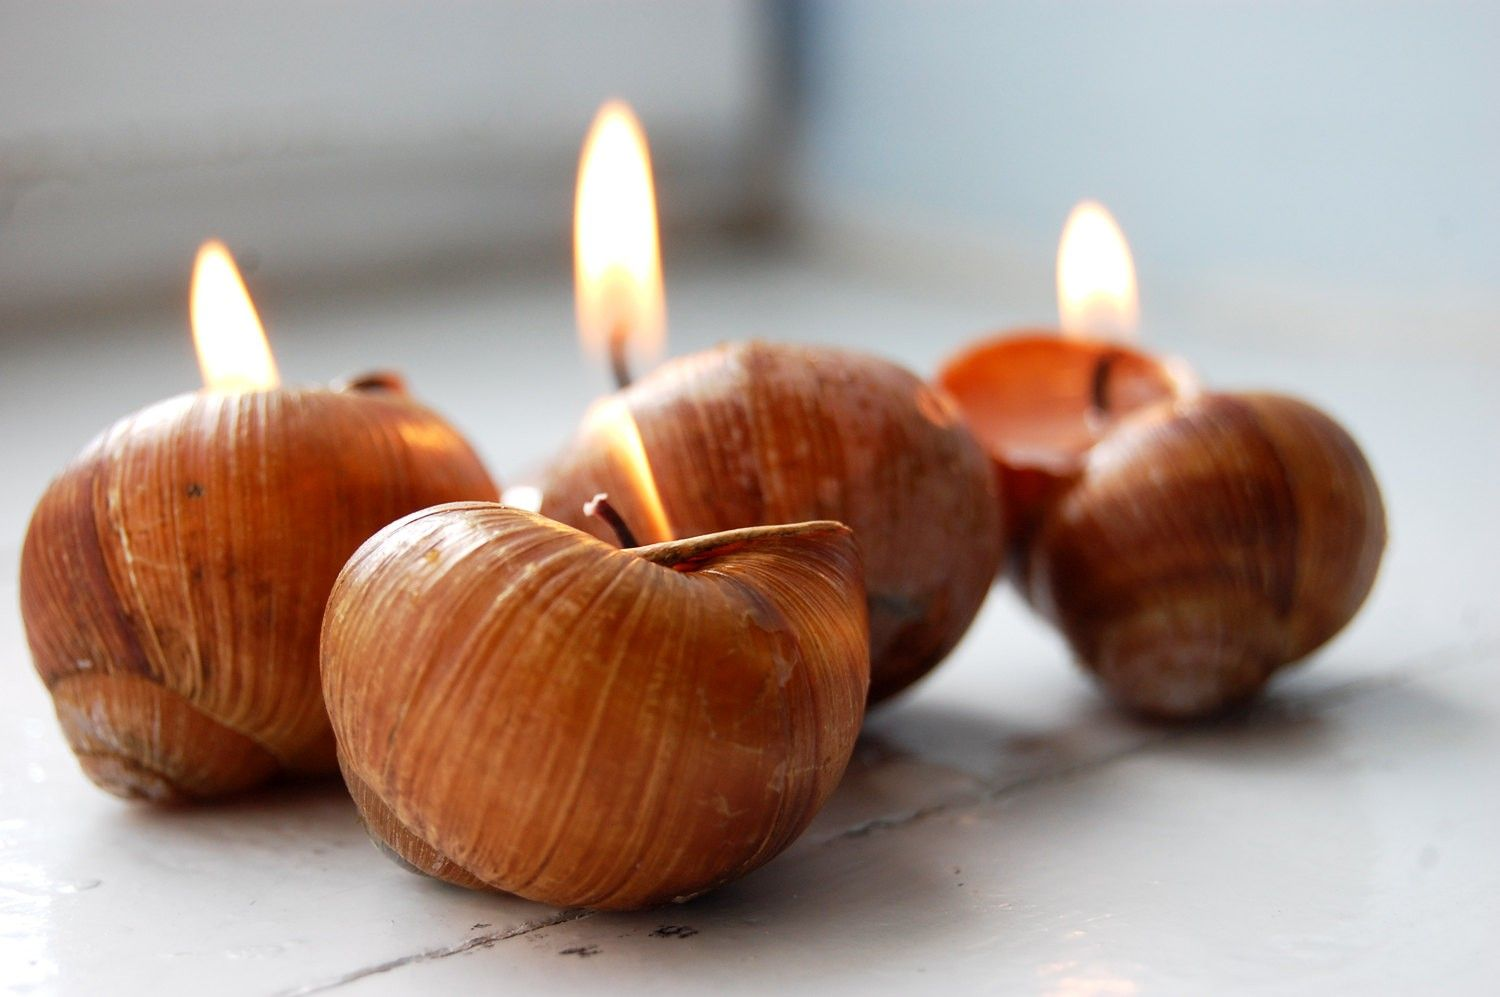 2014 Party Candles Ideas - Snails Shell Candles Handmade ...